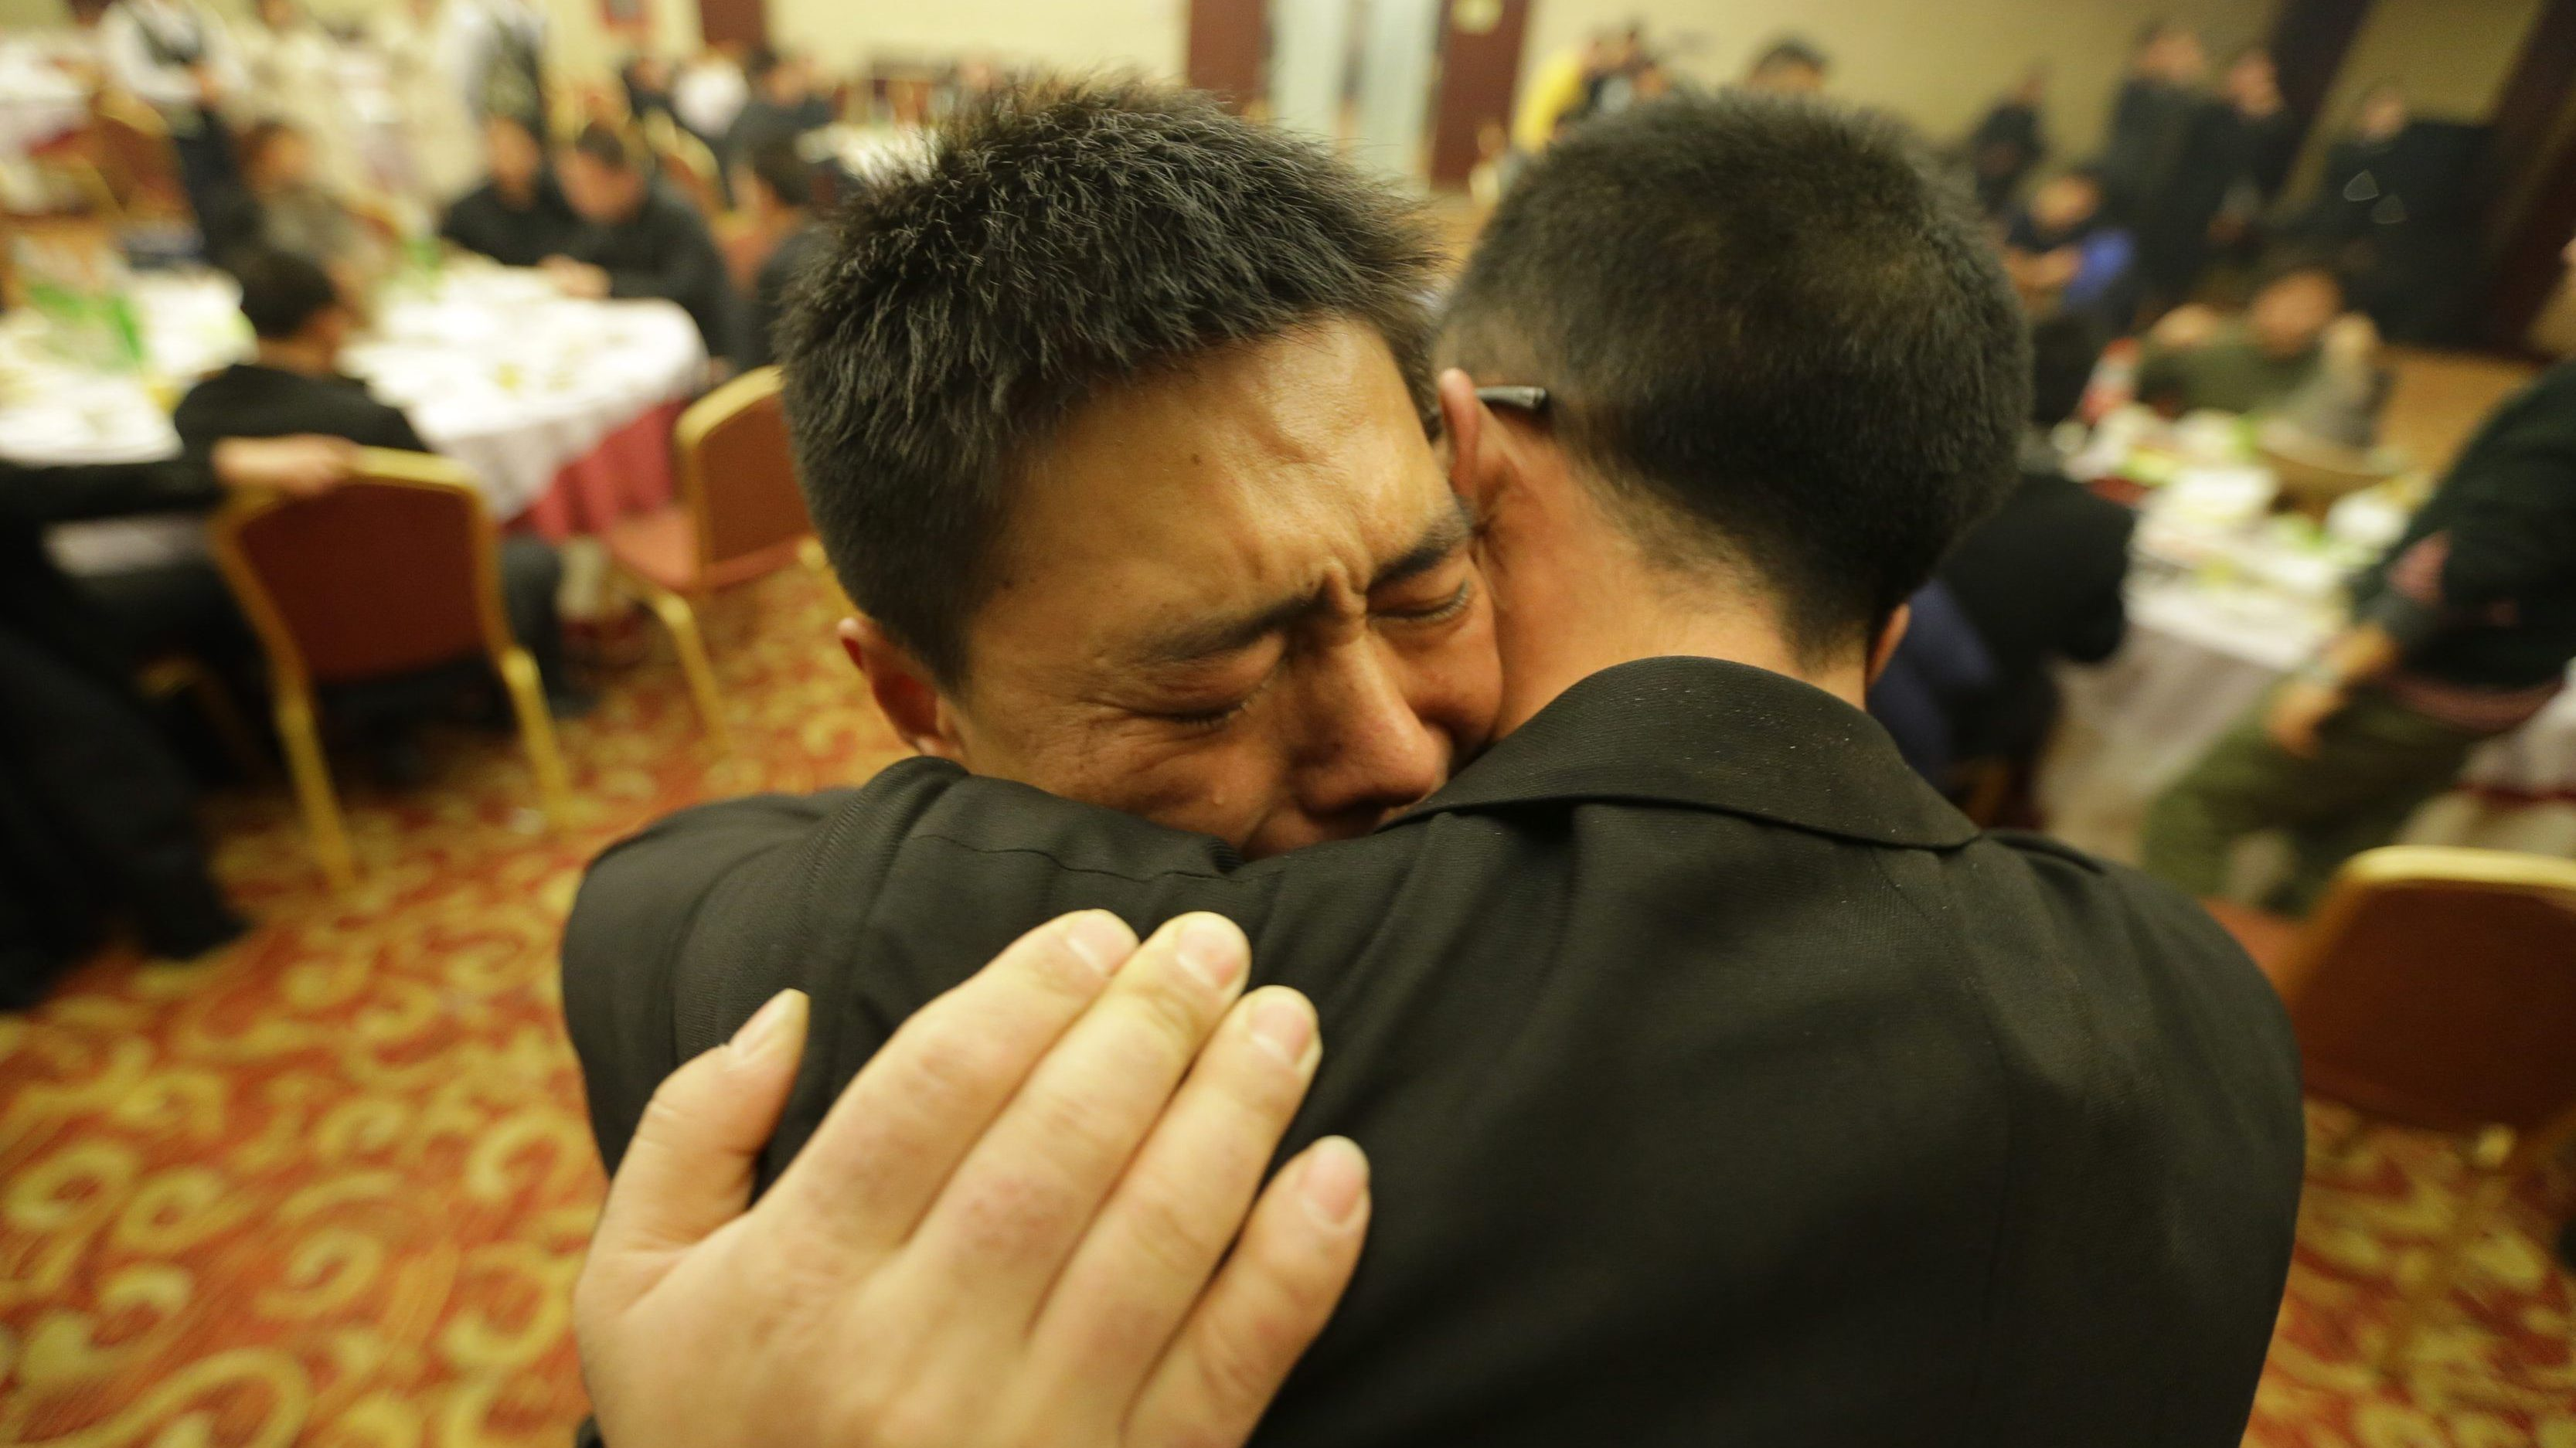 Students from the Tianjiao Special Guard/Security Consultant  bodyguard training hug and cry during a group dinner on the outskirts of Beijing, December 14, 2013. Former Chinese soldier Chen Yongqing has big ambitions for his bodyguard training school Tianjiao, which he says is China's first professional academy to train former soldiers and others as personal security guards.